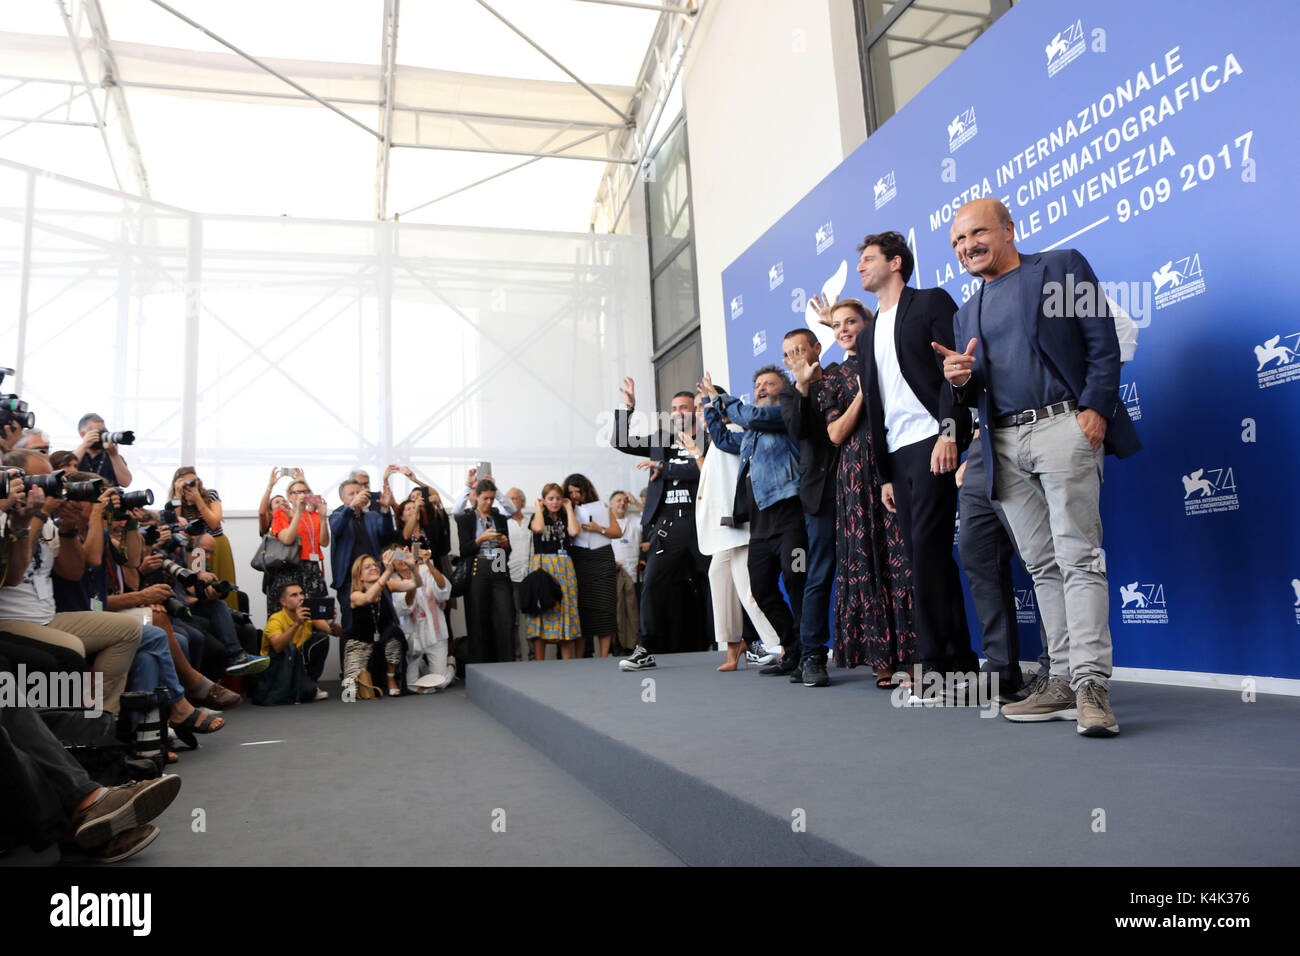 Lido Di Venezia, Italy. 06th Sep, 2017. Europe, Italy, Lido di Venezia, 06 september, 2017 : the cast of movie 'Ammore - Stock Image